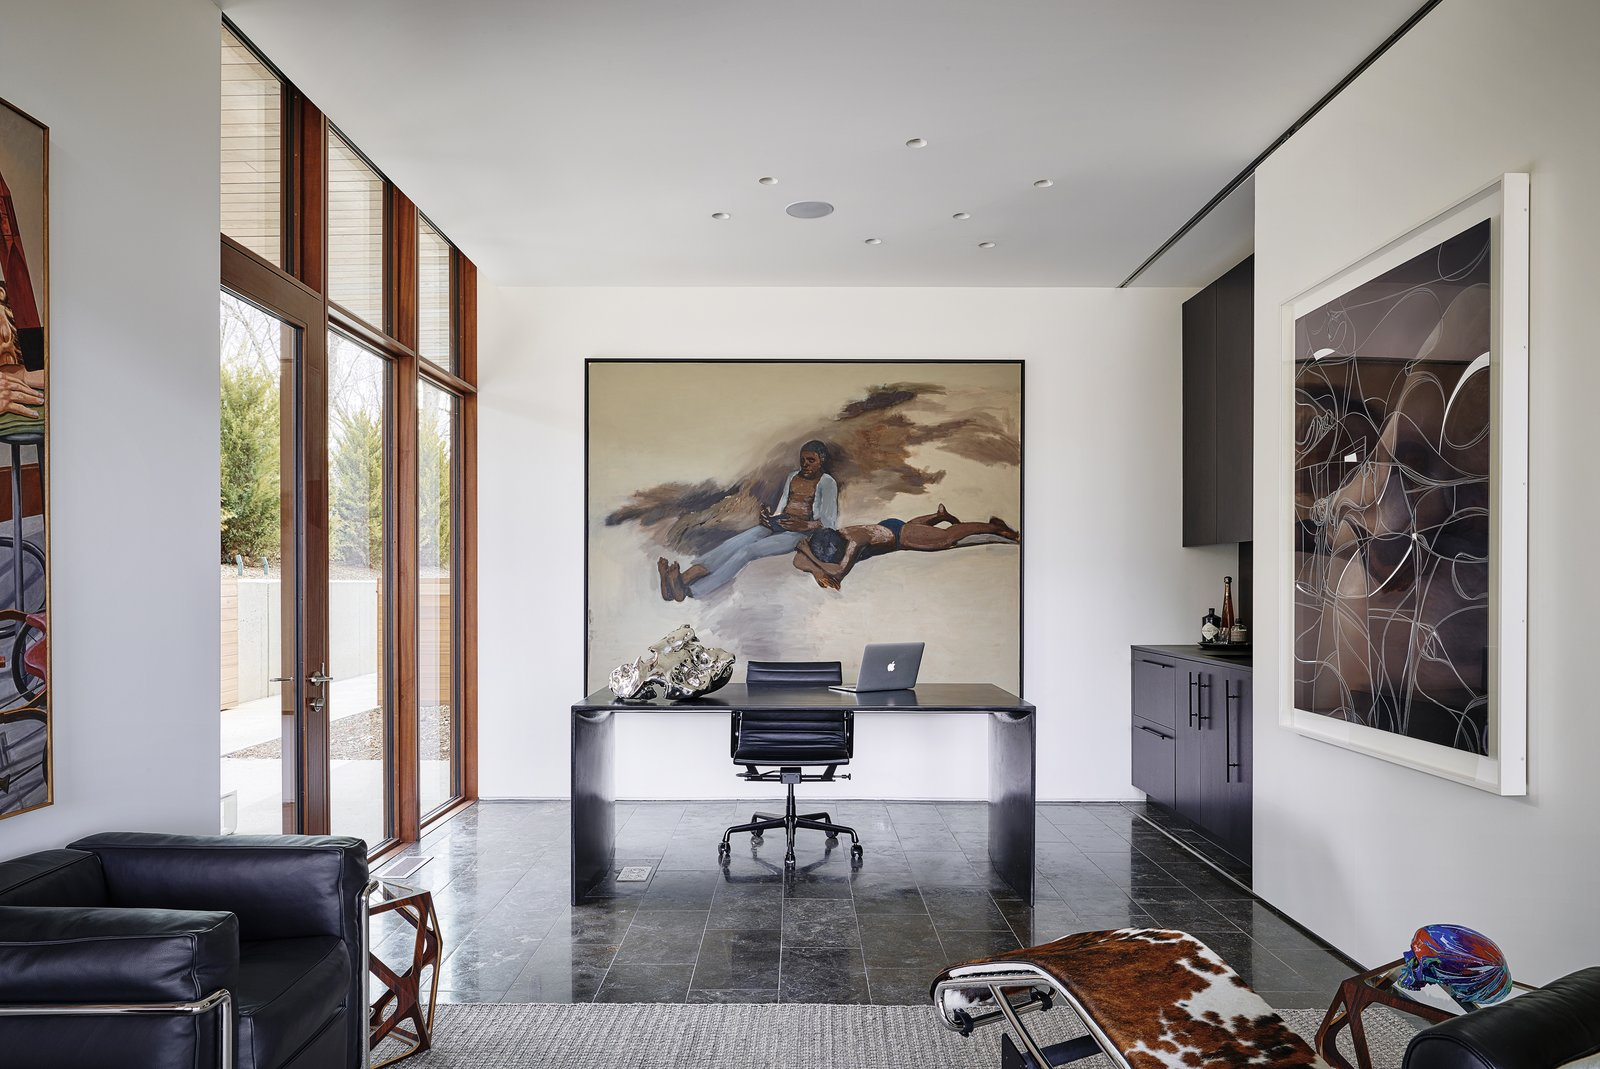 Office, Desk, Chair, Study Room Type, and Marble Floor Large spaces and blank walls allow the owners to modify and rotate artwork locations over time, creating an endless palette of wonder.     Photo 15 of 23 in A Luminous, Eco-Friendly Abode Is Completed With its Own Modern Art Gallery from Artery House